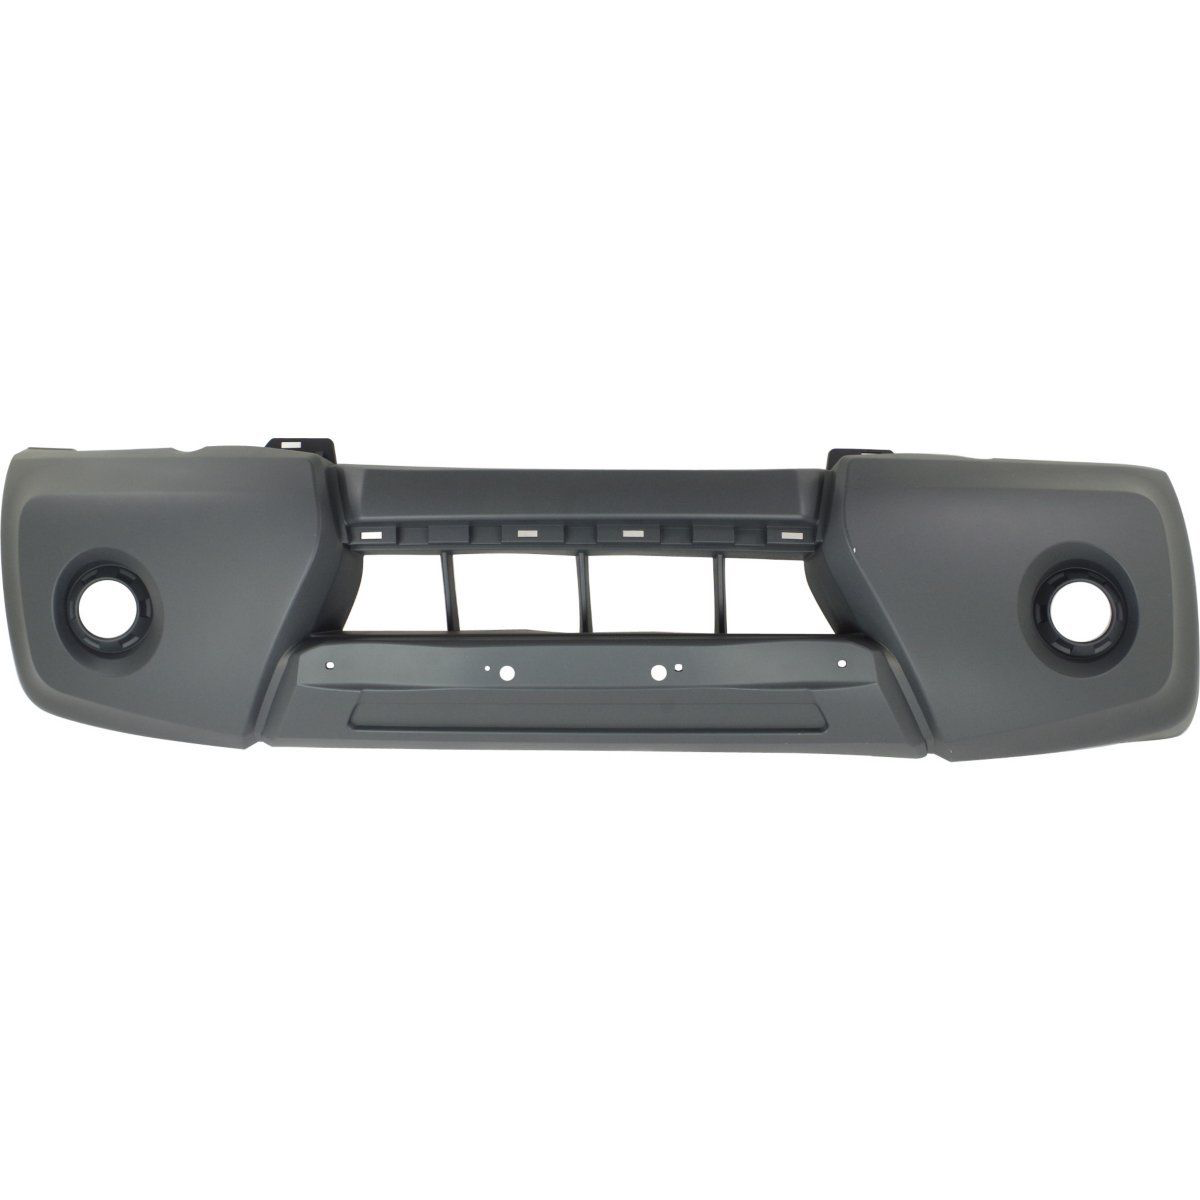 2009-2015 NISSAN XTERRA Front Bumper Cover Painted to Match